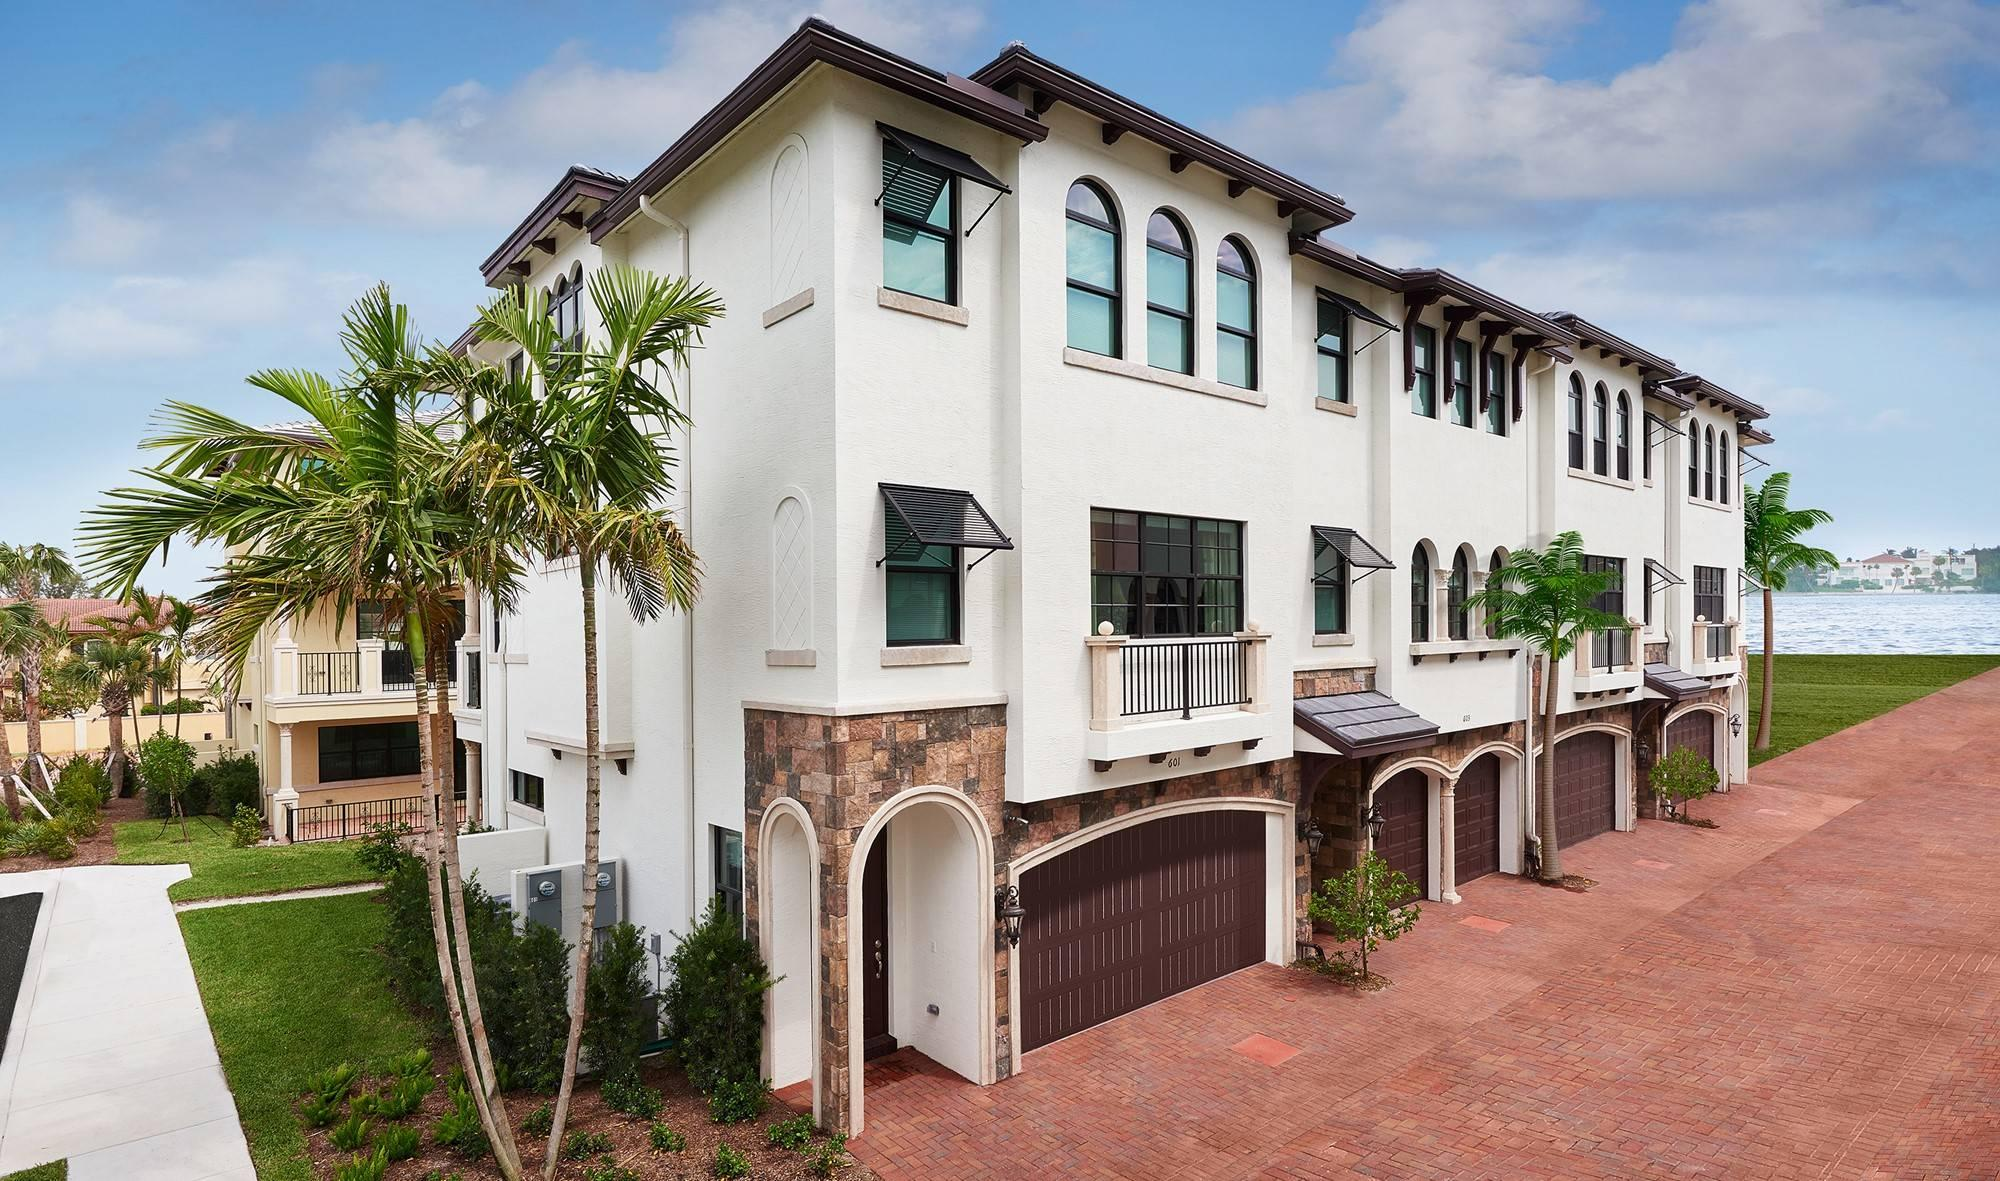 Photo of 5 Windward Lane #23, Boynton Beach, FL 33435